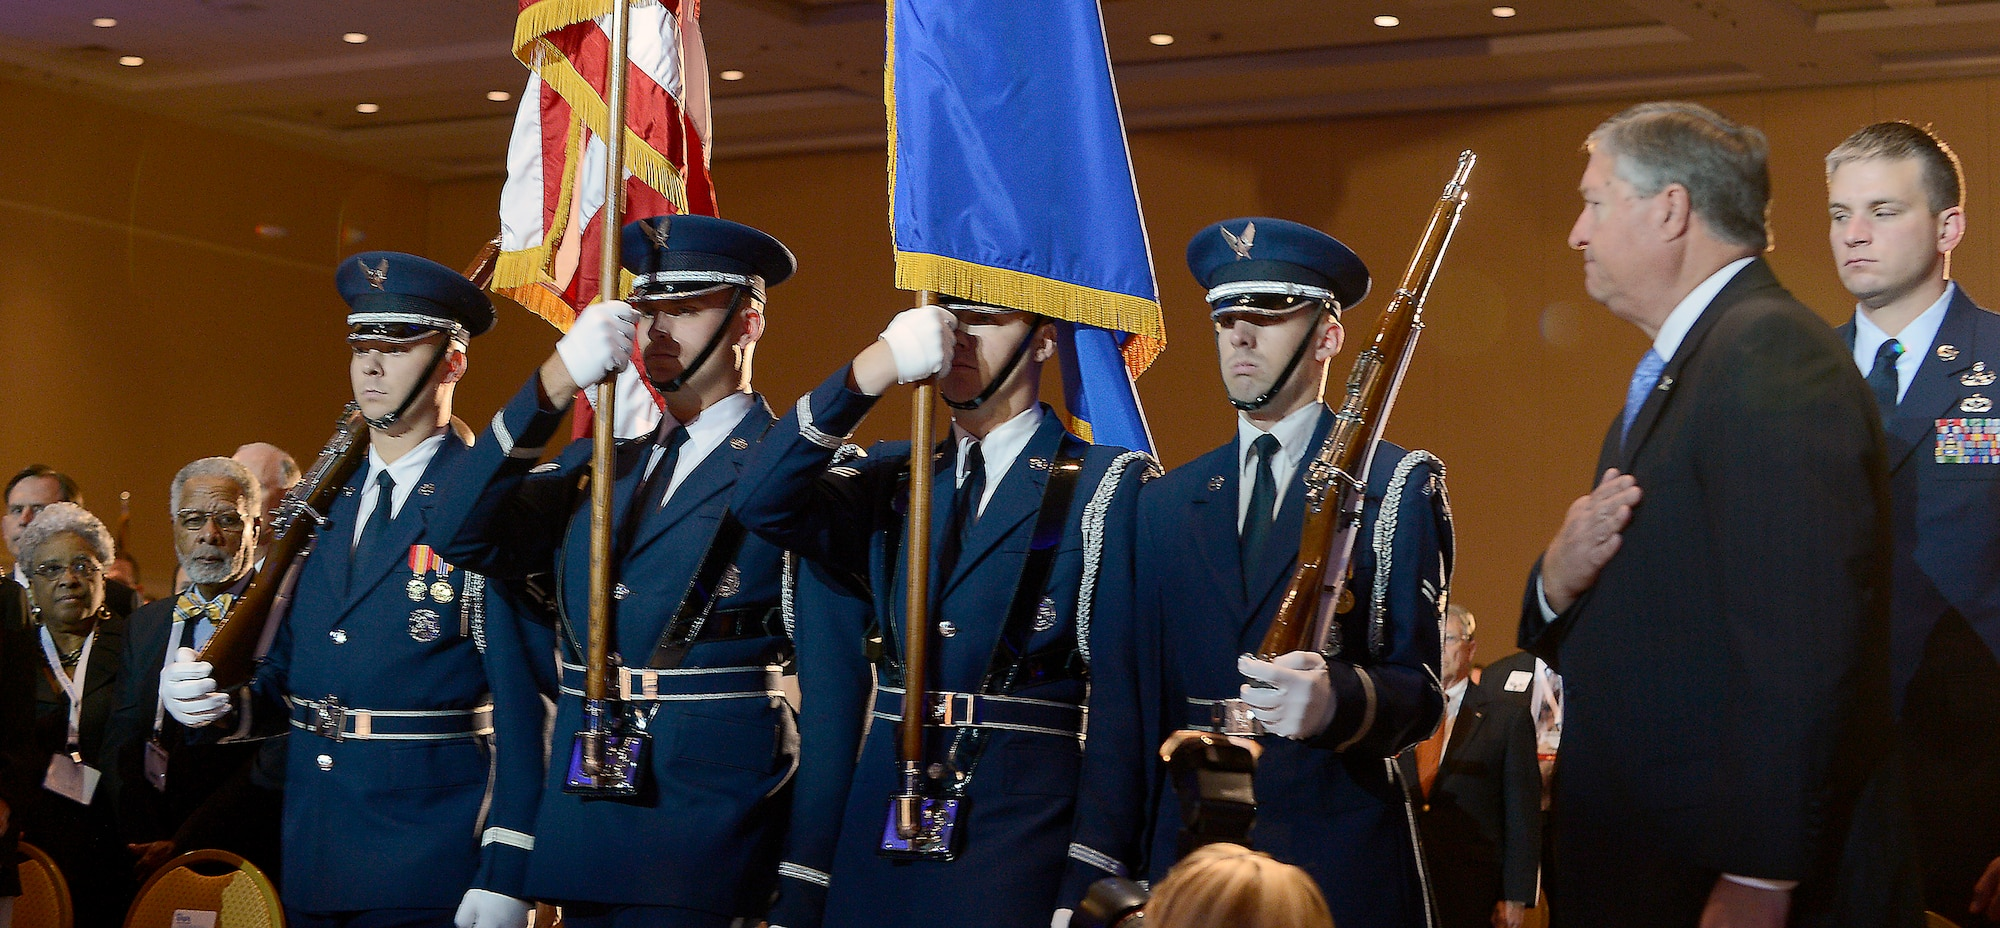 Honor guard members prepare to post the colors as Secretary of the Air Force Michael Donley looks on during the opening ceremony of the Air Force Association's Air and Space Conference and Technology Exposition in Washington, D.C., Sept. 17, 2012. (U.S. Air Force photo/Scott M. Ash)